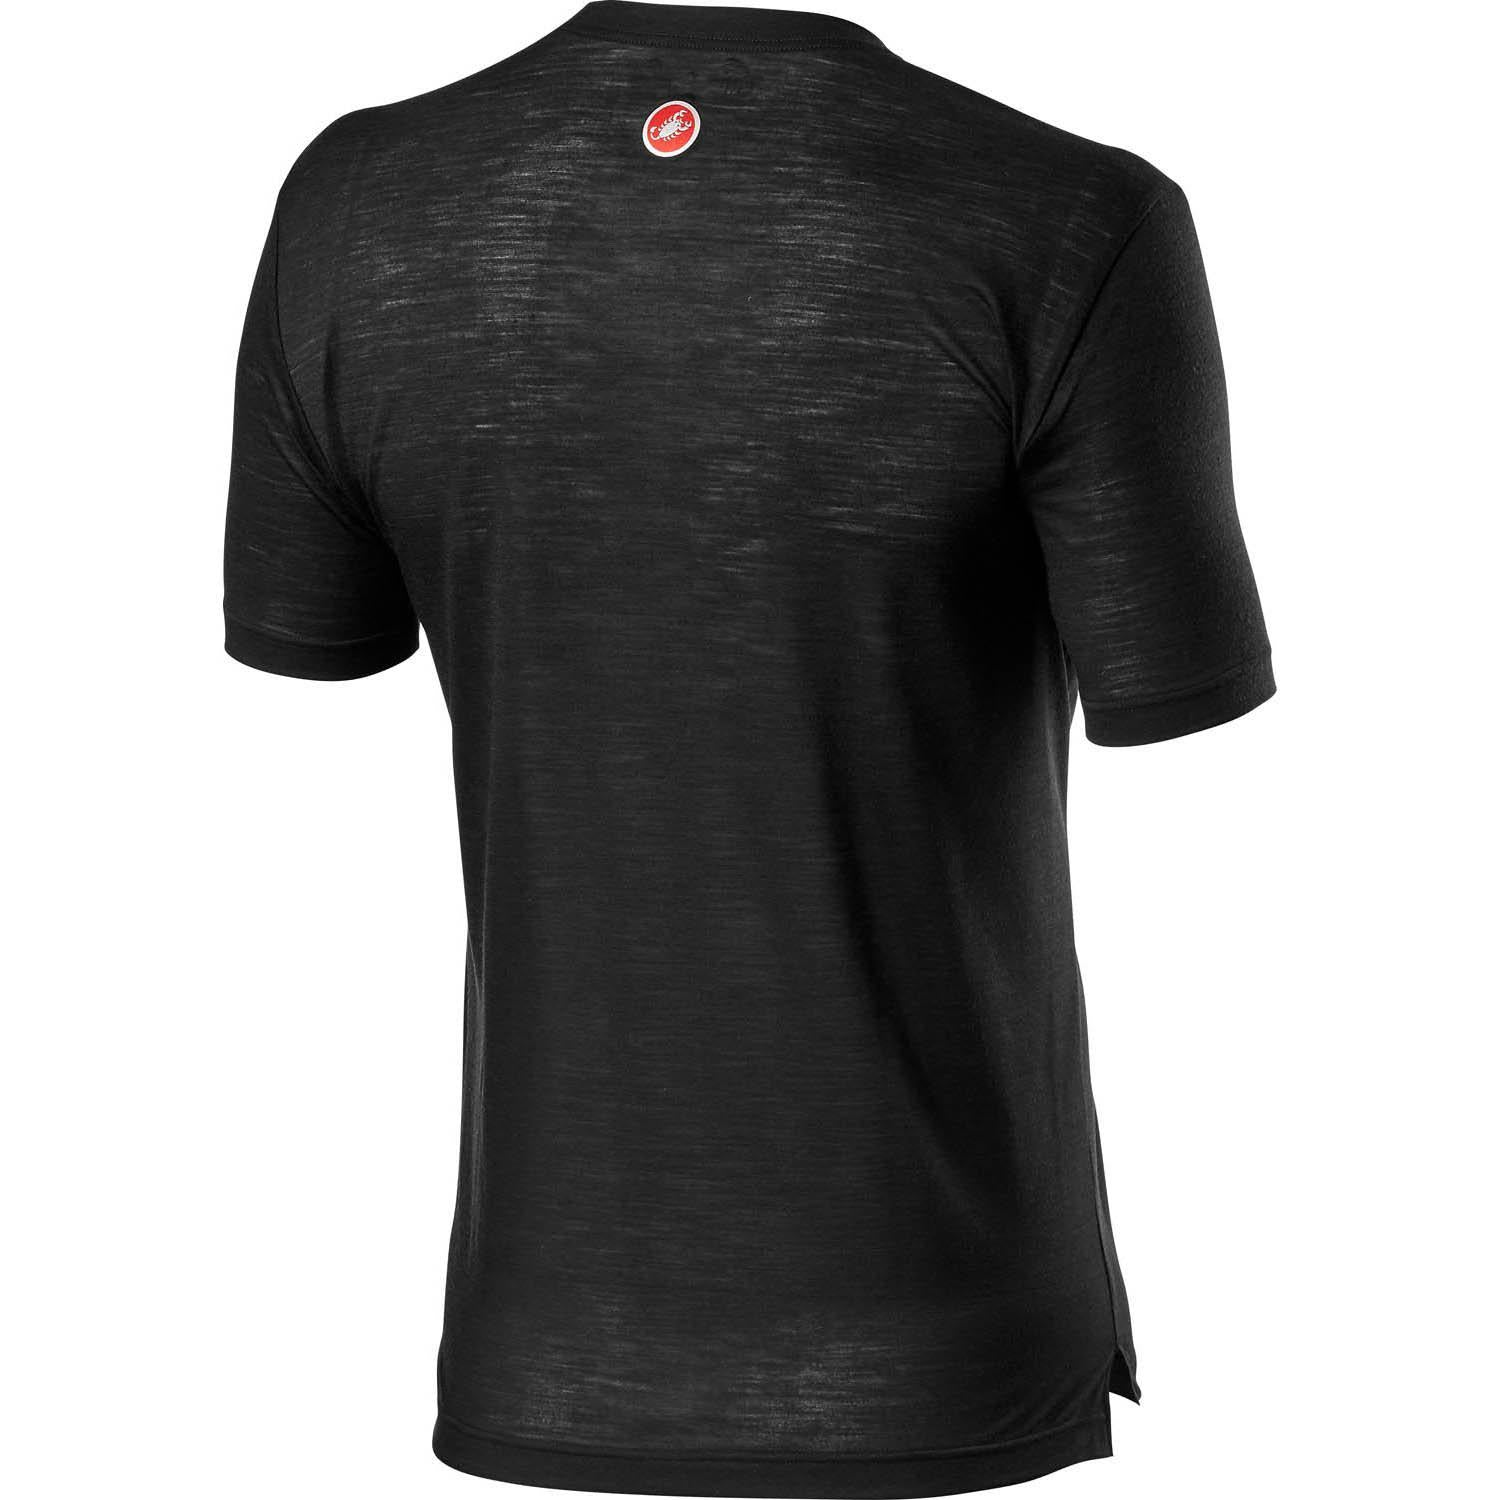 Castelli-Castelli Giro Heritage Tee--saddleback-elite-performance-cycling